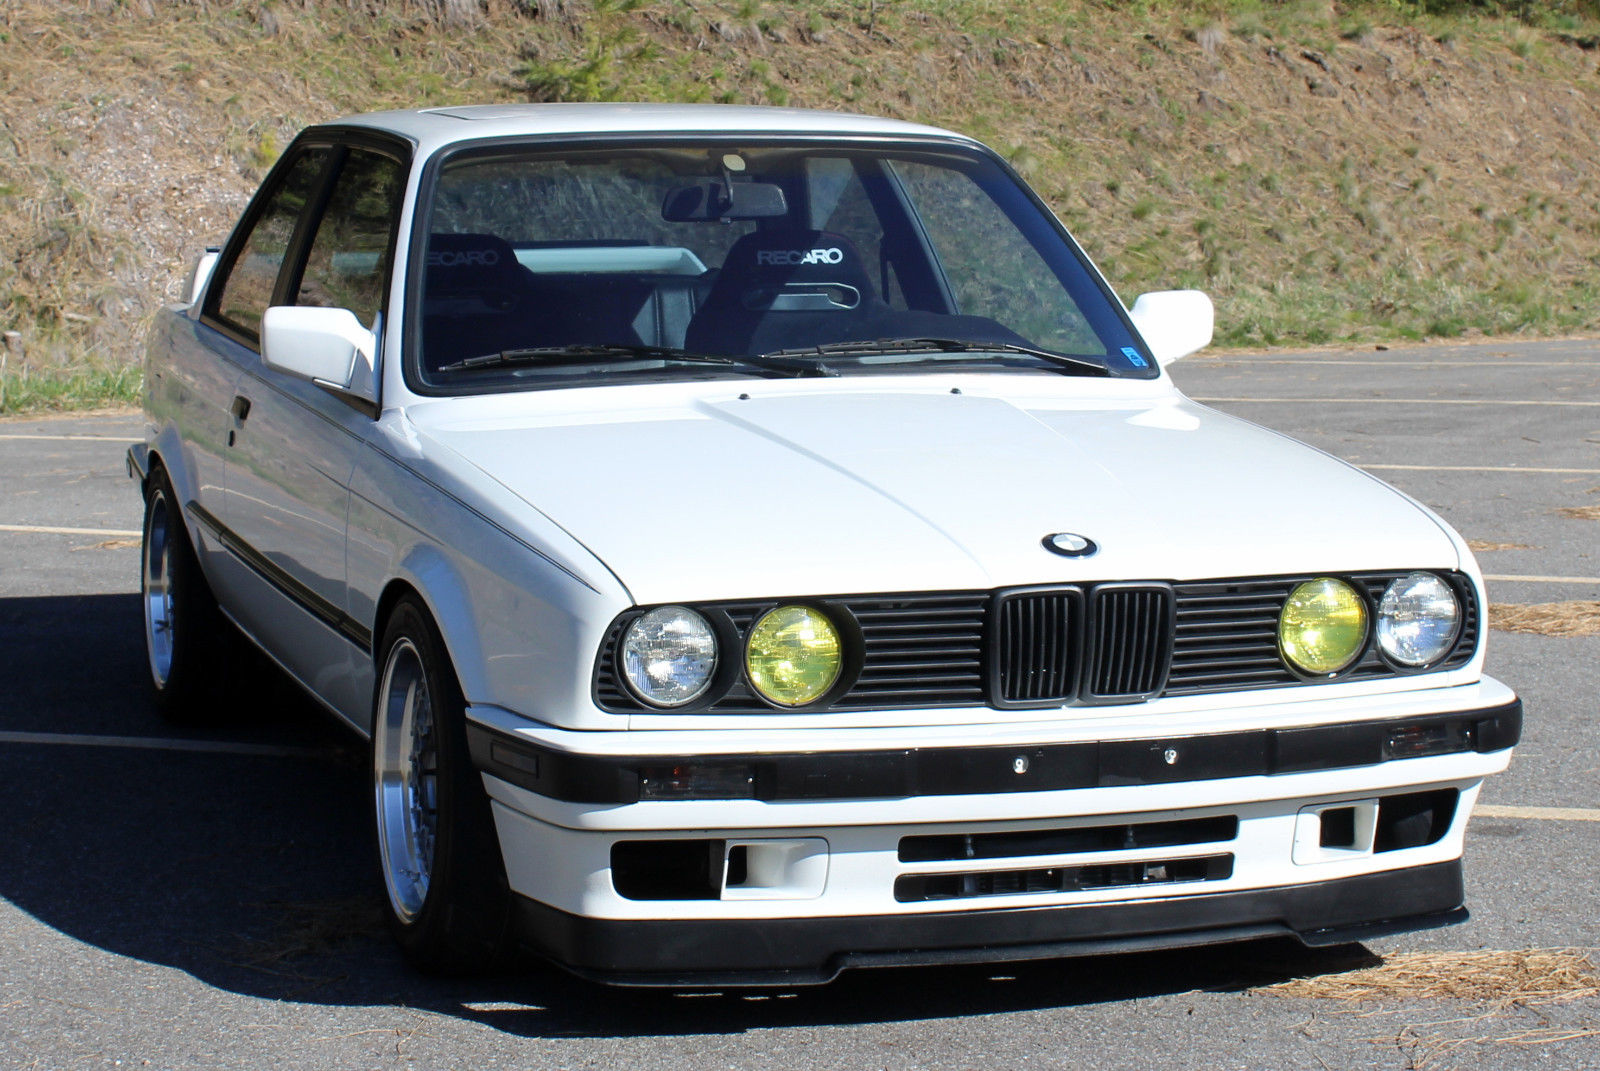 hight resolution of this 1991 bmw 325i is for sale on ebay esd may earn commisions when a product is purchased from this link located in athol idaho